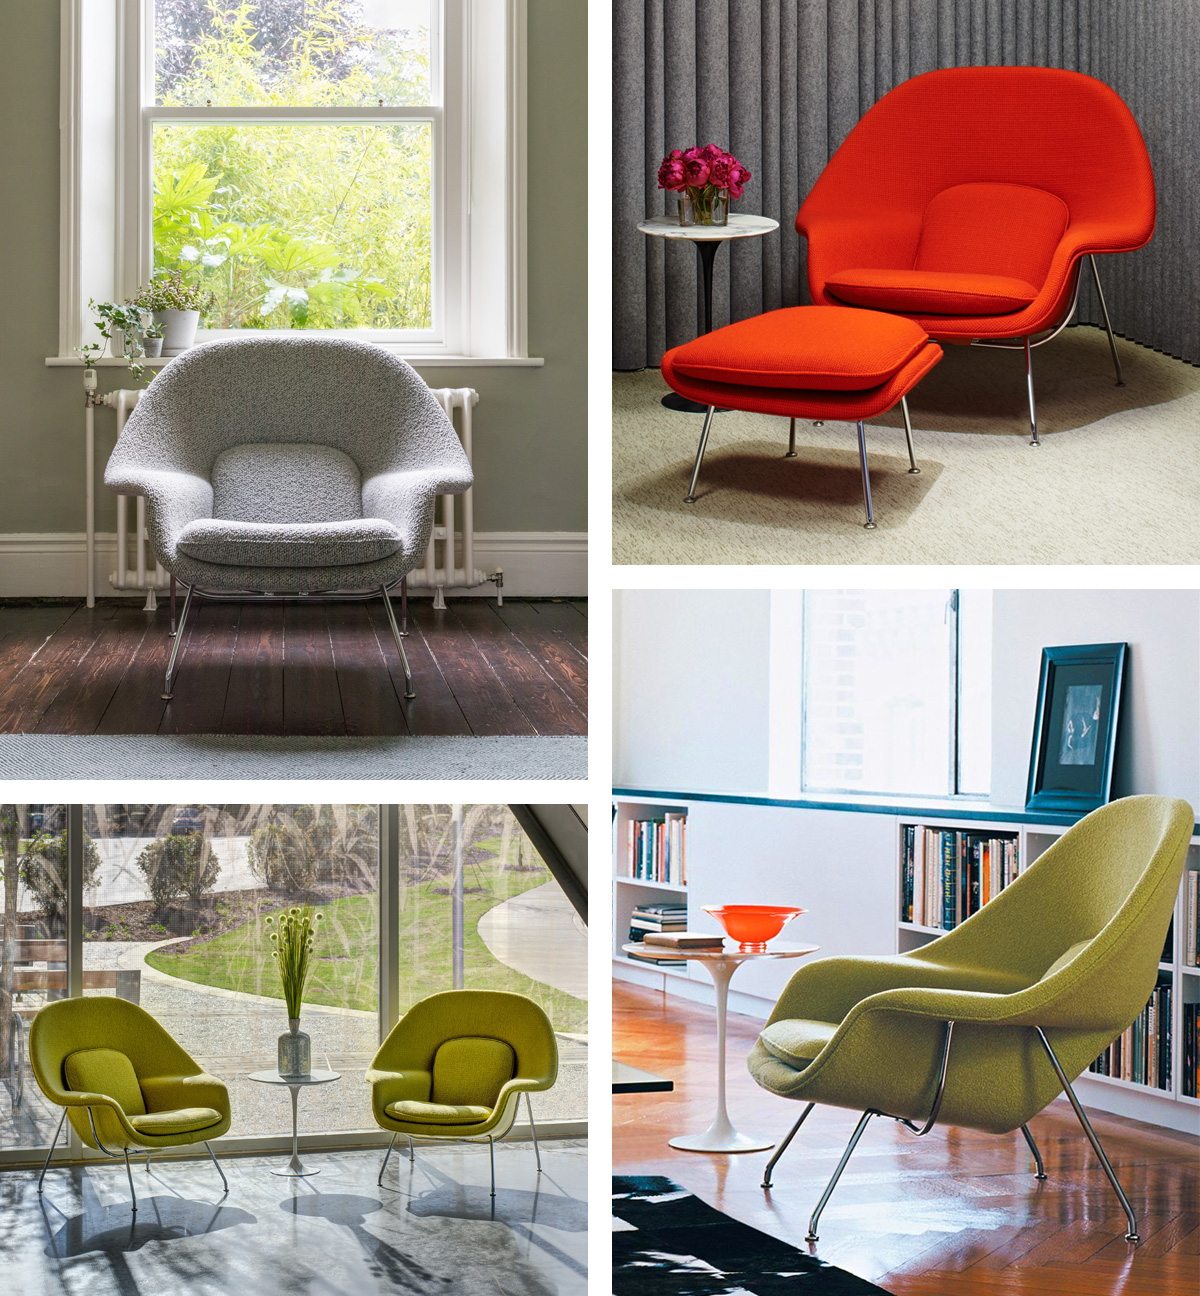 Knoll Womb Chairs in the home